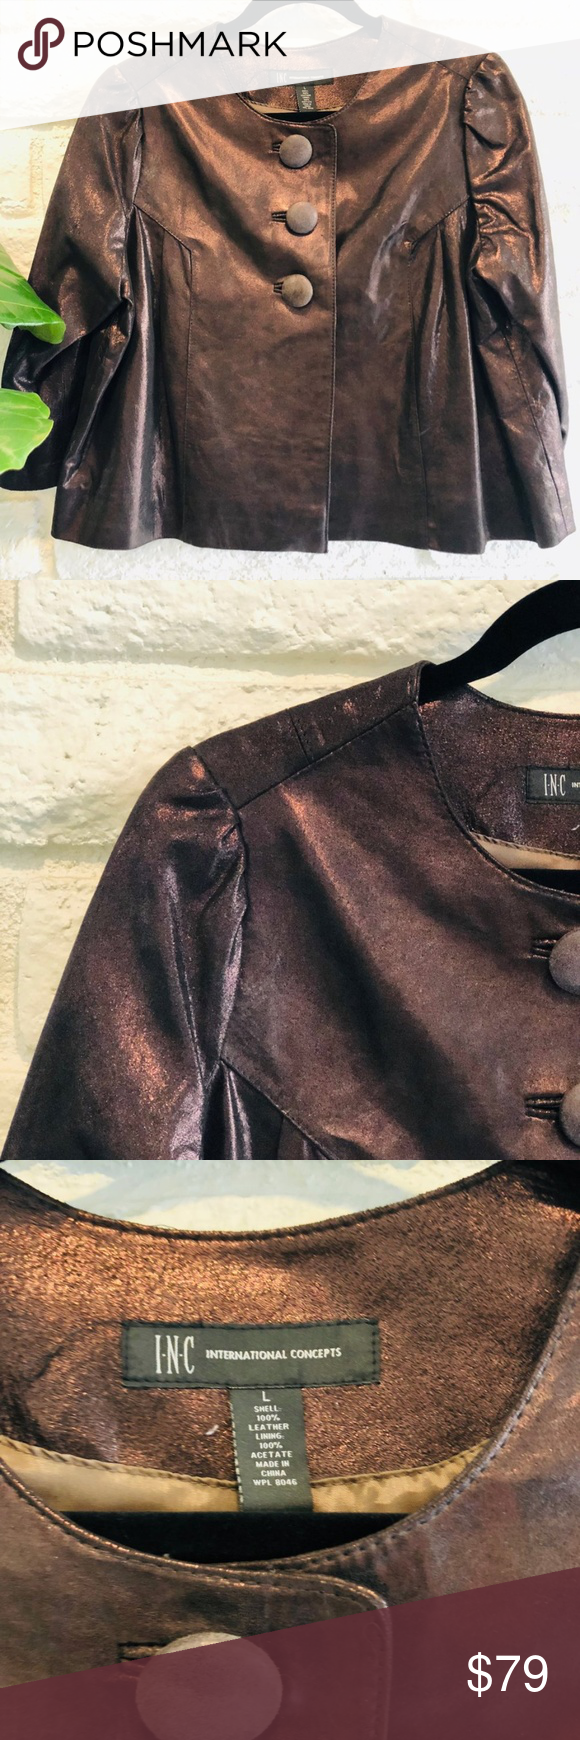 INC Brown Leather Jacket Size L Love this gorgeous bronze/brown leather jacket from INC. The cute three buttons in the front give this jacket a ton of style.  And the 3/4 sleeves are just too fun.  I love wearing this type of jacket with a long, thin sweater underneath so the sweater peeks out the jacket.   Like new, this jacket will take you through the winter months looking good!  Great for work and play.  Ask me any questions.  Follow me on Twitter and Facebook @melissanorthway Check out my blog at www.dandelionwomen.com INC International Concepts Jackets & Coats